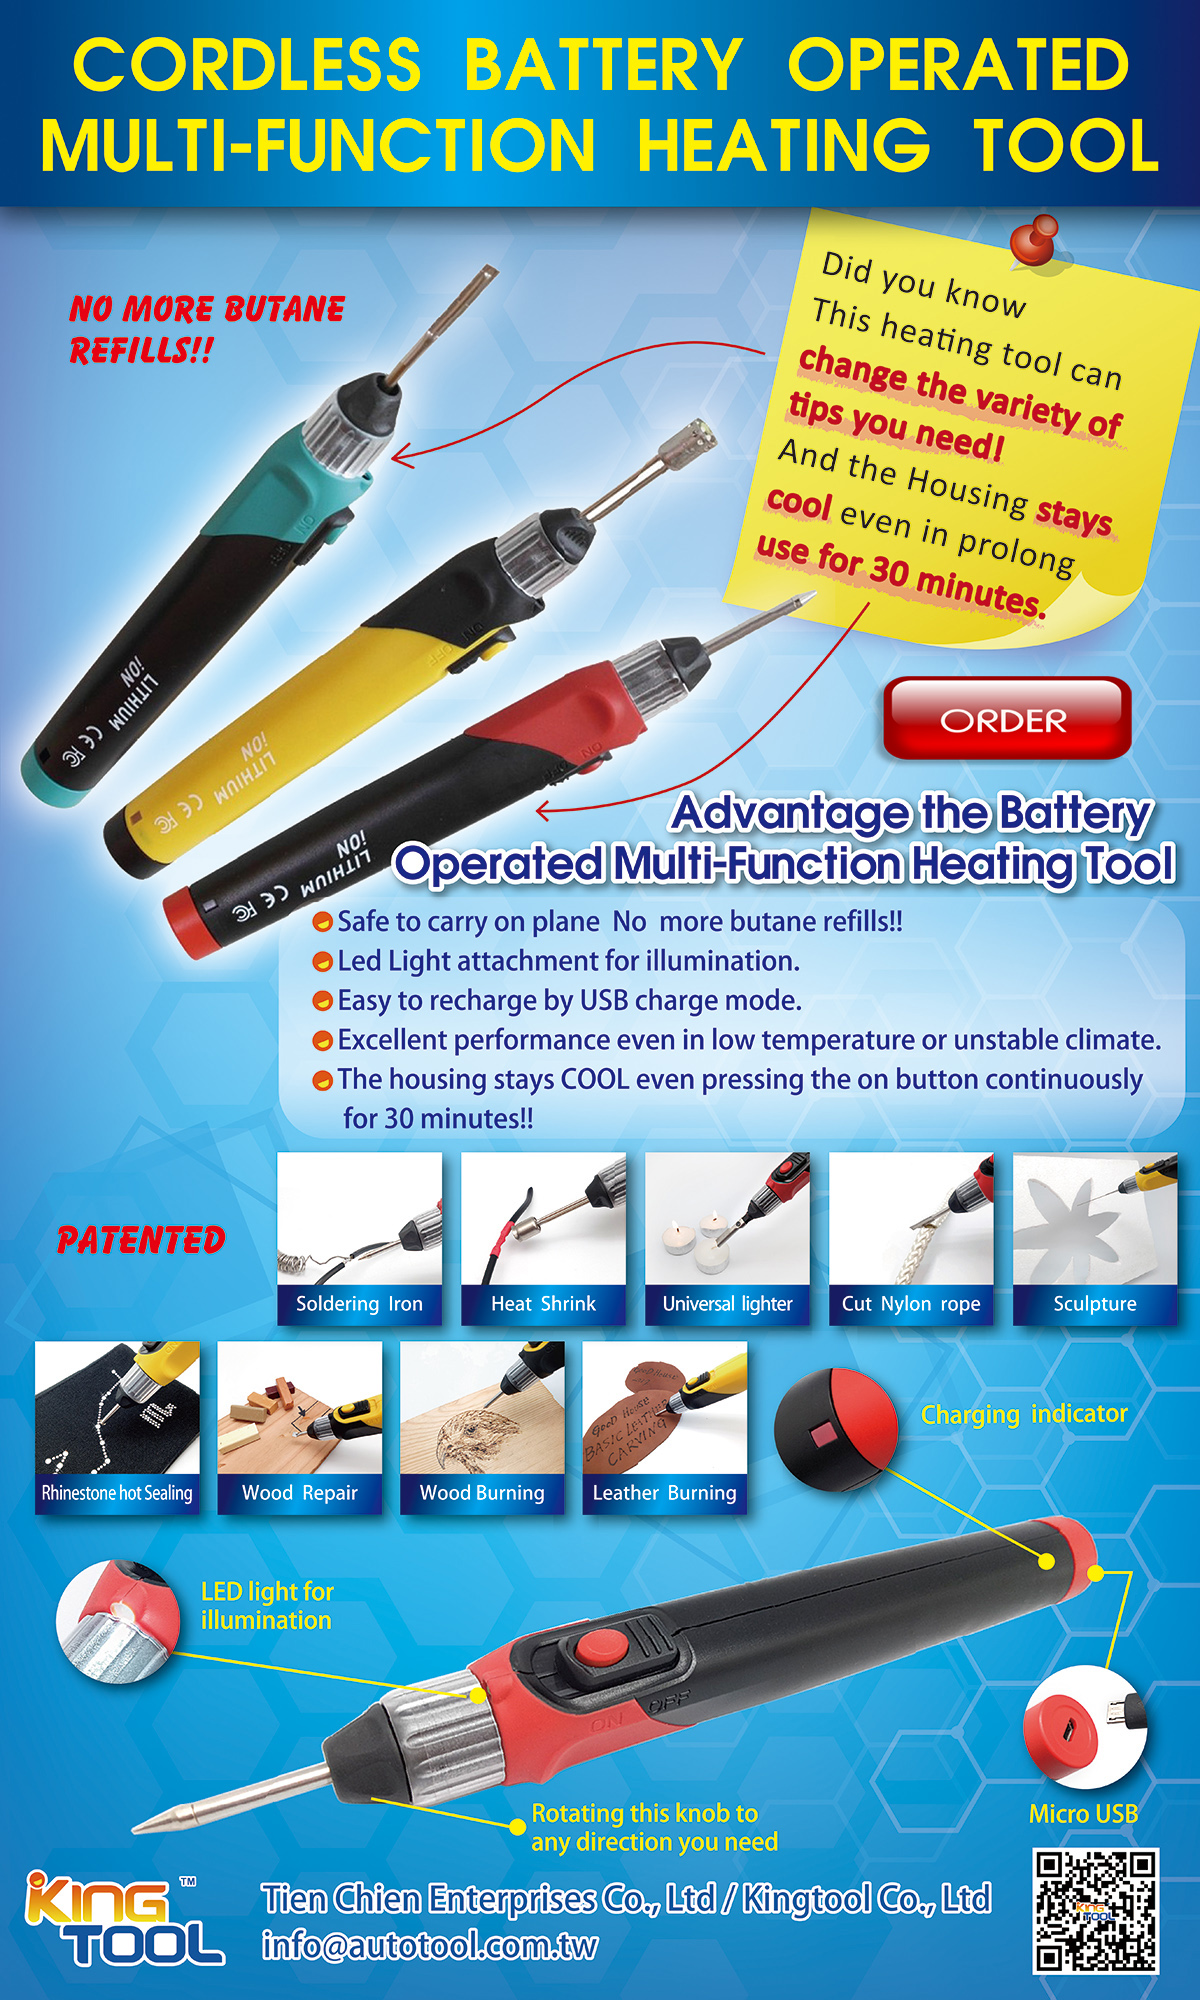 Cordless portable heating foam tool hot knife, View High